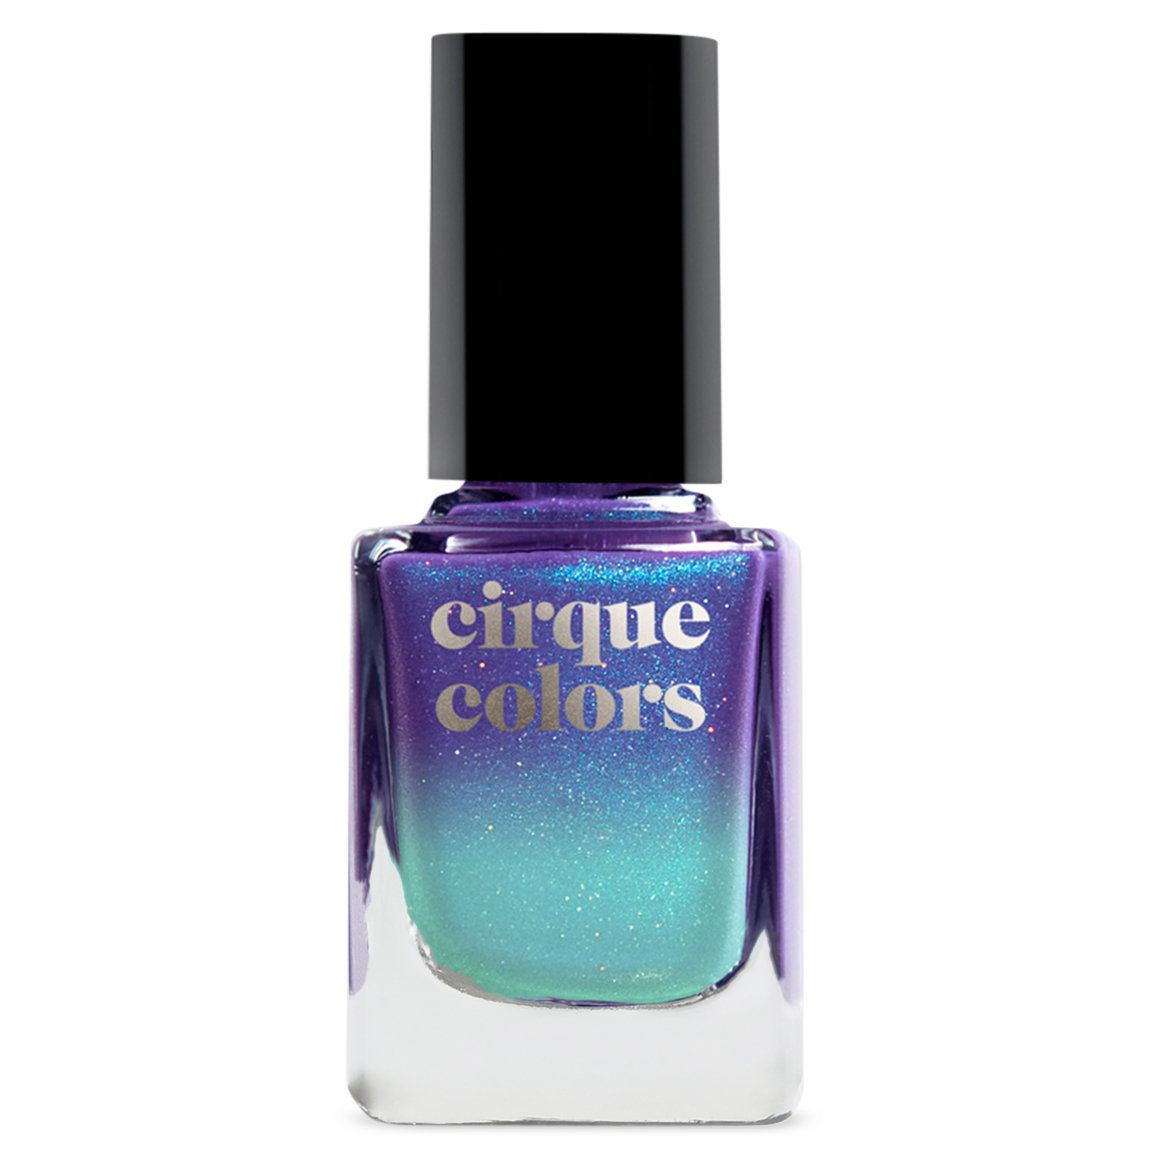 Cirque Colors Thermal Nail Polish Luna alternative view 1 - product swatch.